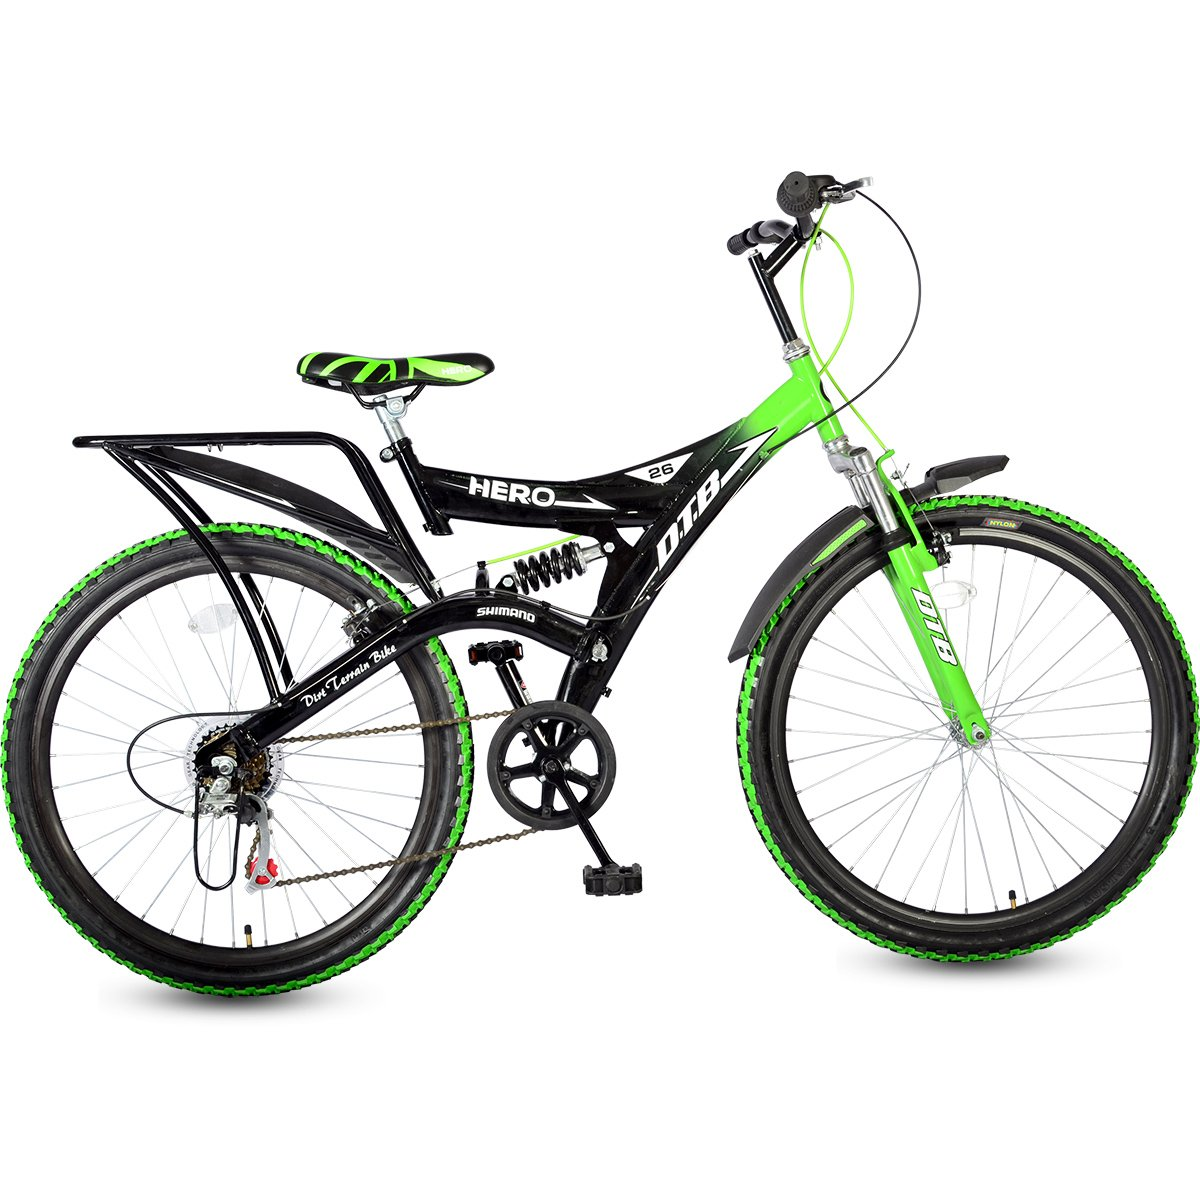 Hero Ranger Carbon-Steel Cycle (Black/Green)